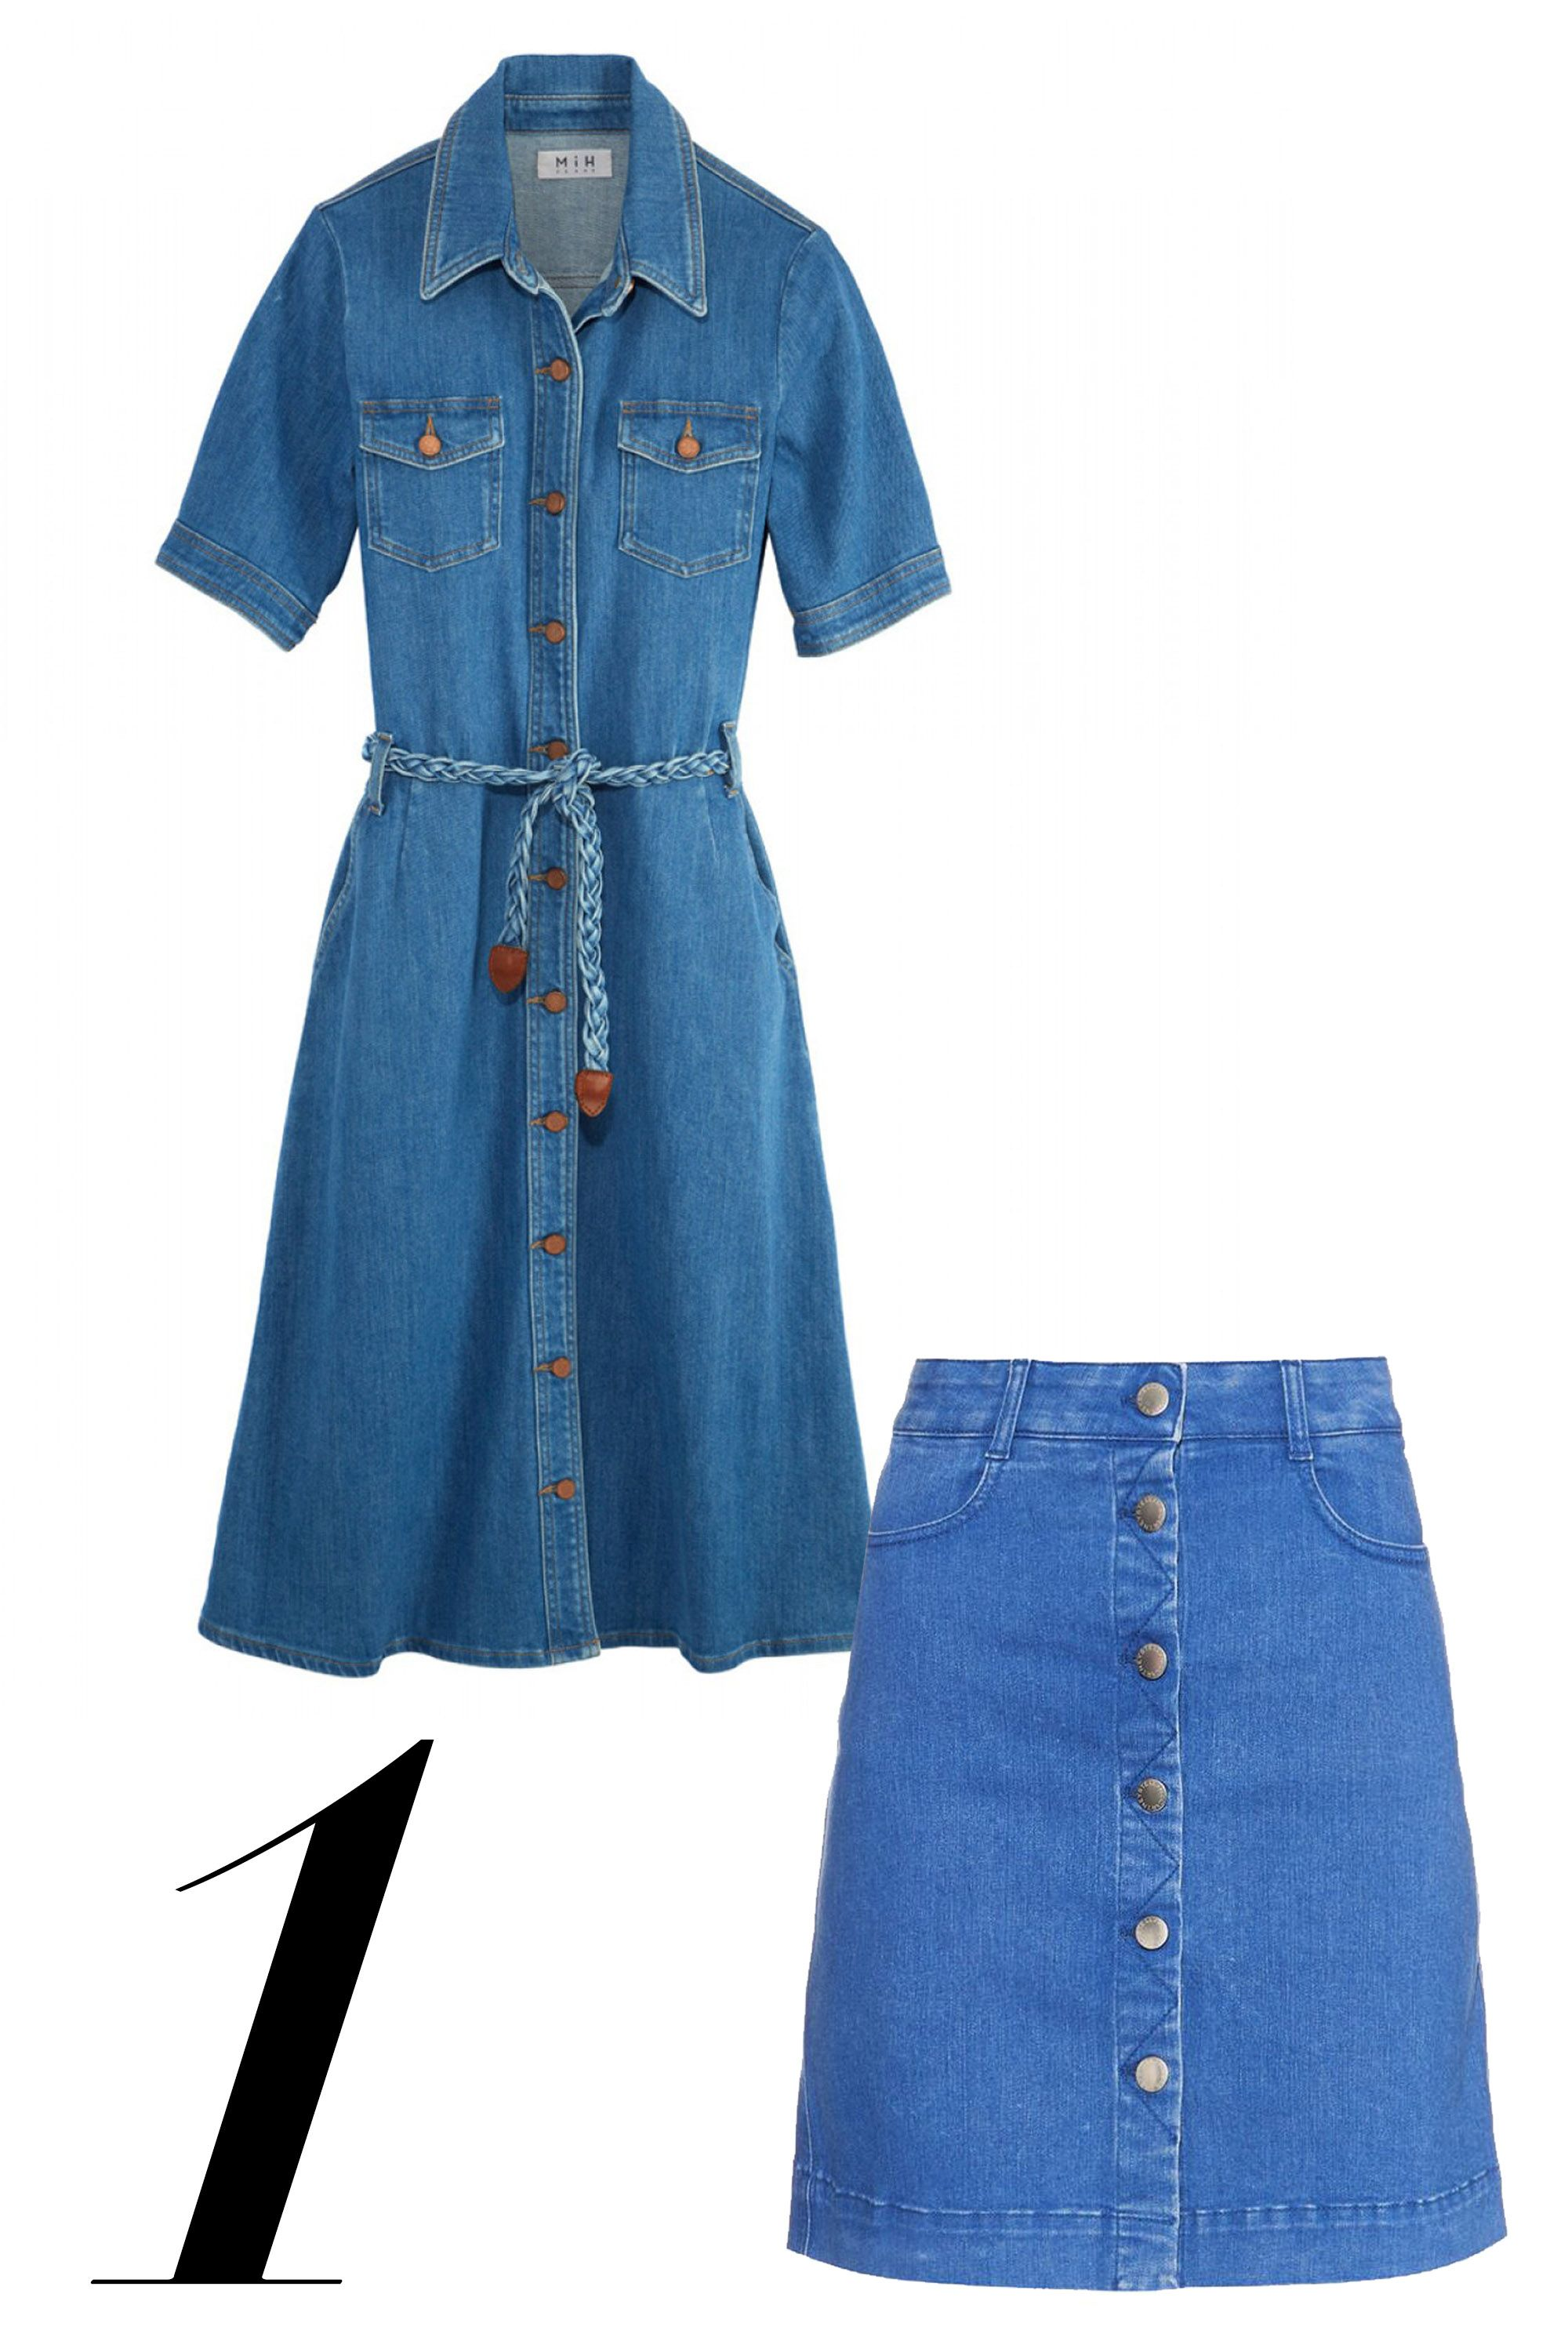 "Embrace fashion's main decade of choice in feminine denim with brass button details.  <em>MiH dress, $375, <a target=""_blank"" href=""http://shop.harpersbazaar.com/designers/mih-jeans/70-s-denim-dress/"">shopBAZAAR.com</a></em><img src=""http://assets.hdmtools.com/images/HBZ/Shop.svg"" class=""icon shop""><em>; Stella McCartney skirt, $565, <a target=""_blank"" href=""http://www.matchesfashion.com/product/1012870?qxjkl=tsid:57534&utm_campaign=mini%20skirts"">matchesfashion.com</a>.</em>"